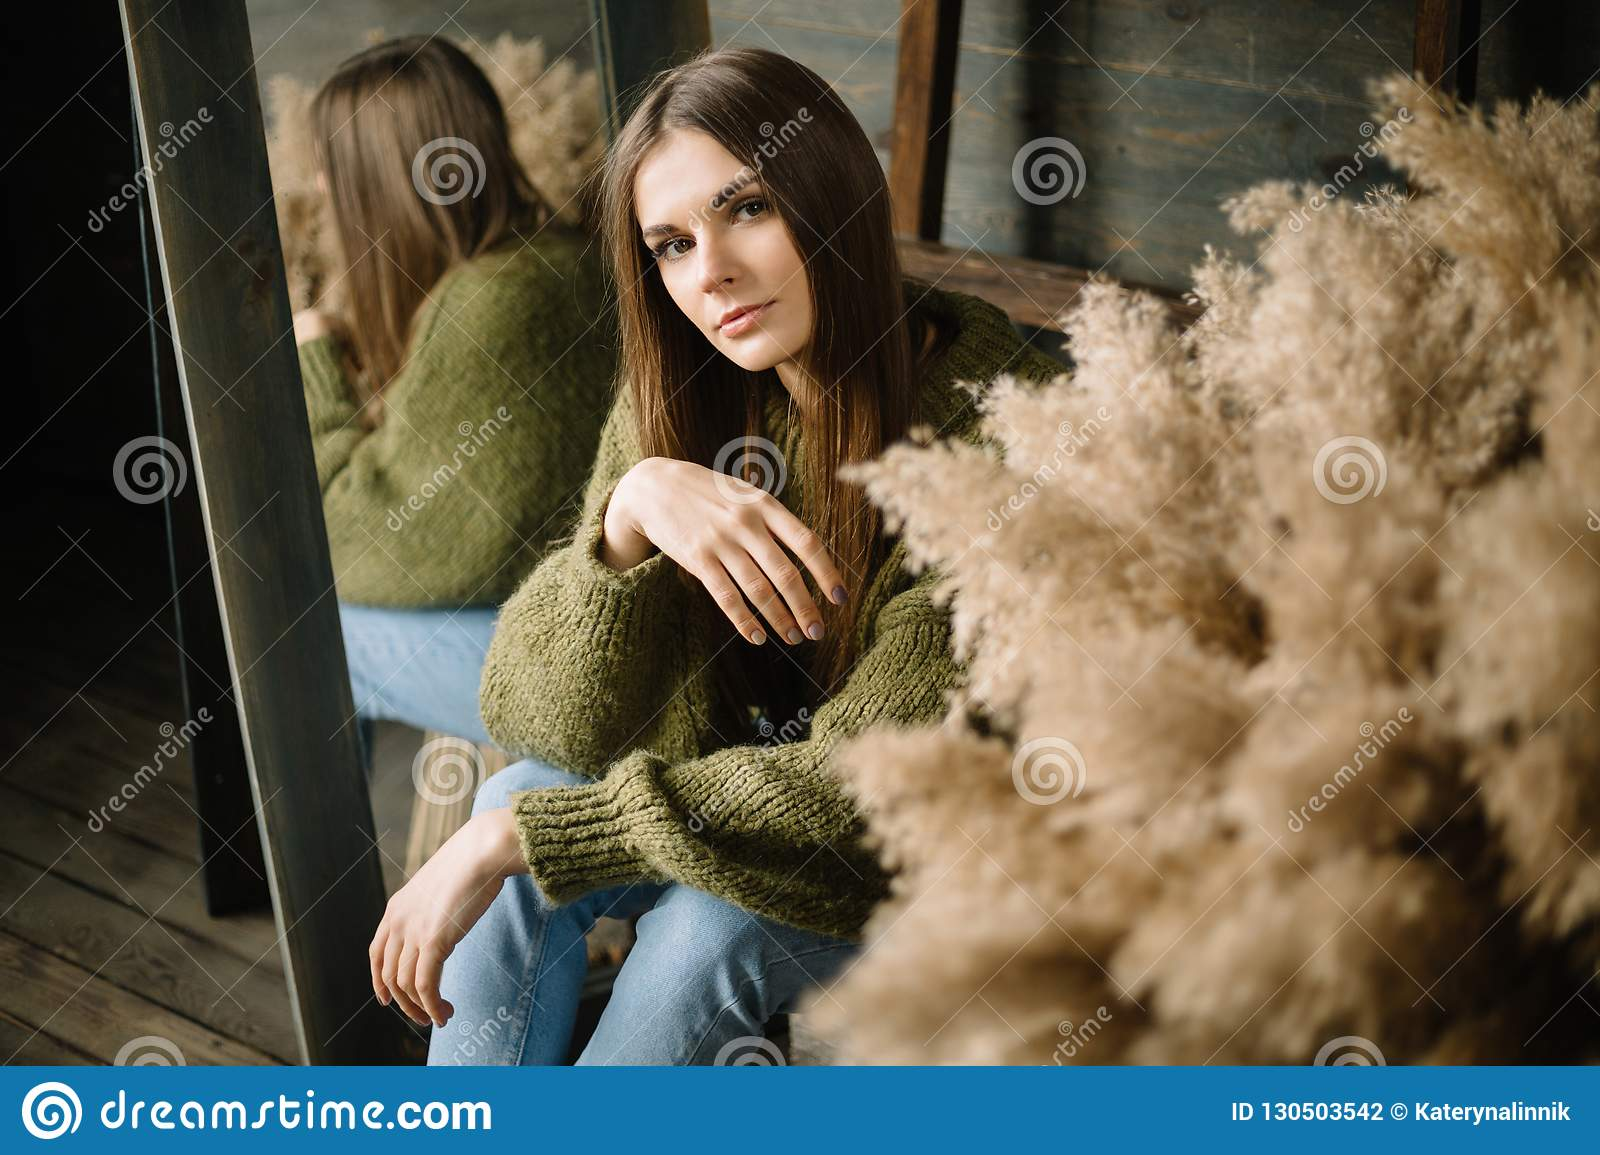 Mysterious smiling young girl in dark green knitted cozy sweater sitting on the floor. Studio conceptual photo